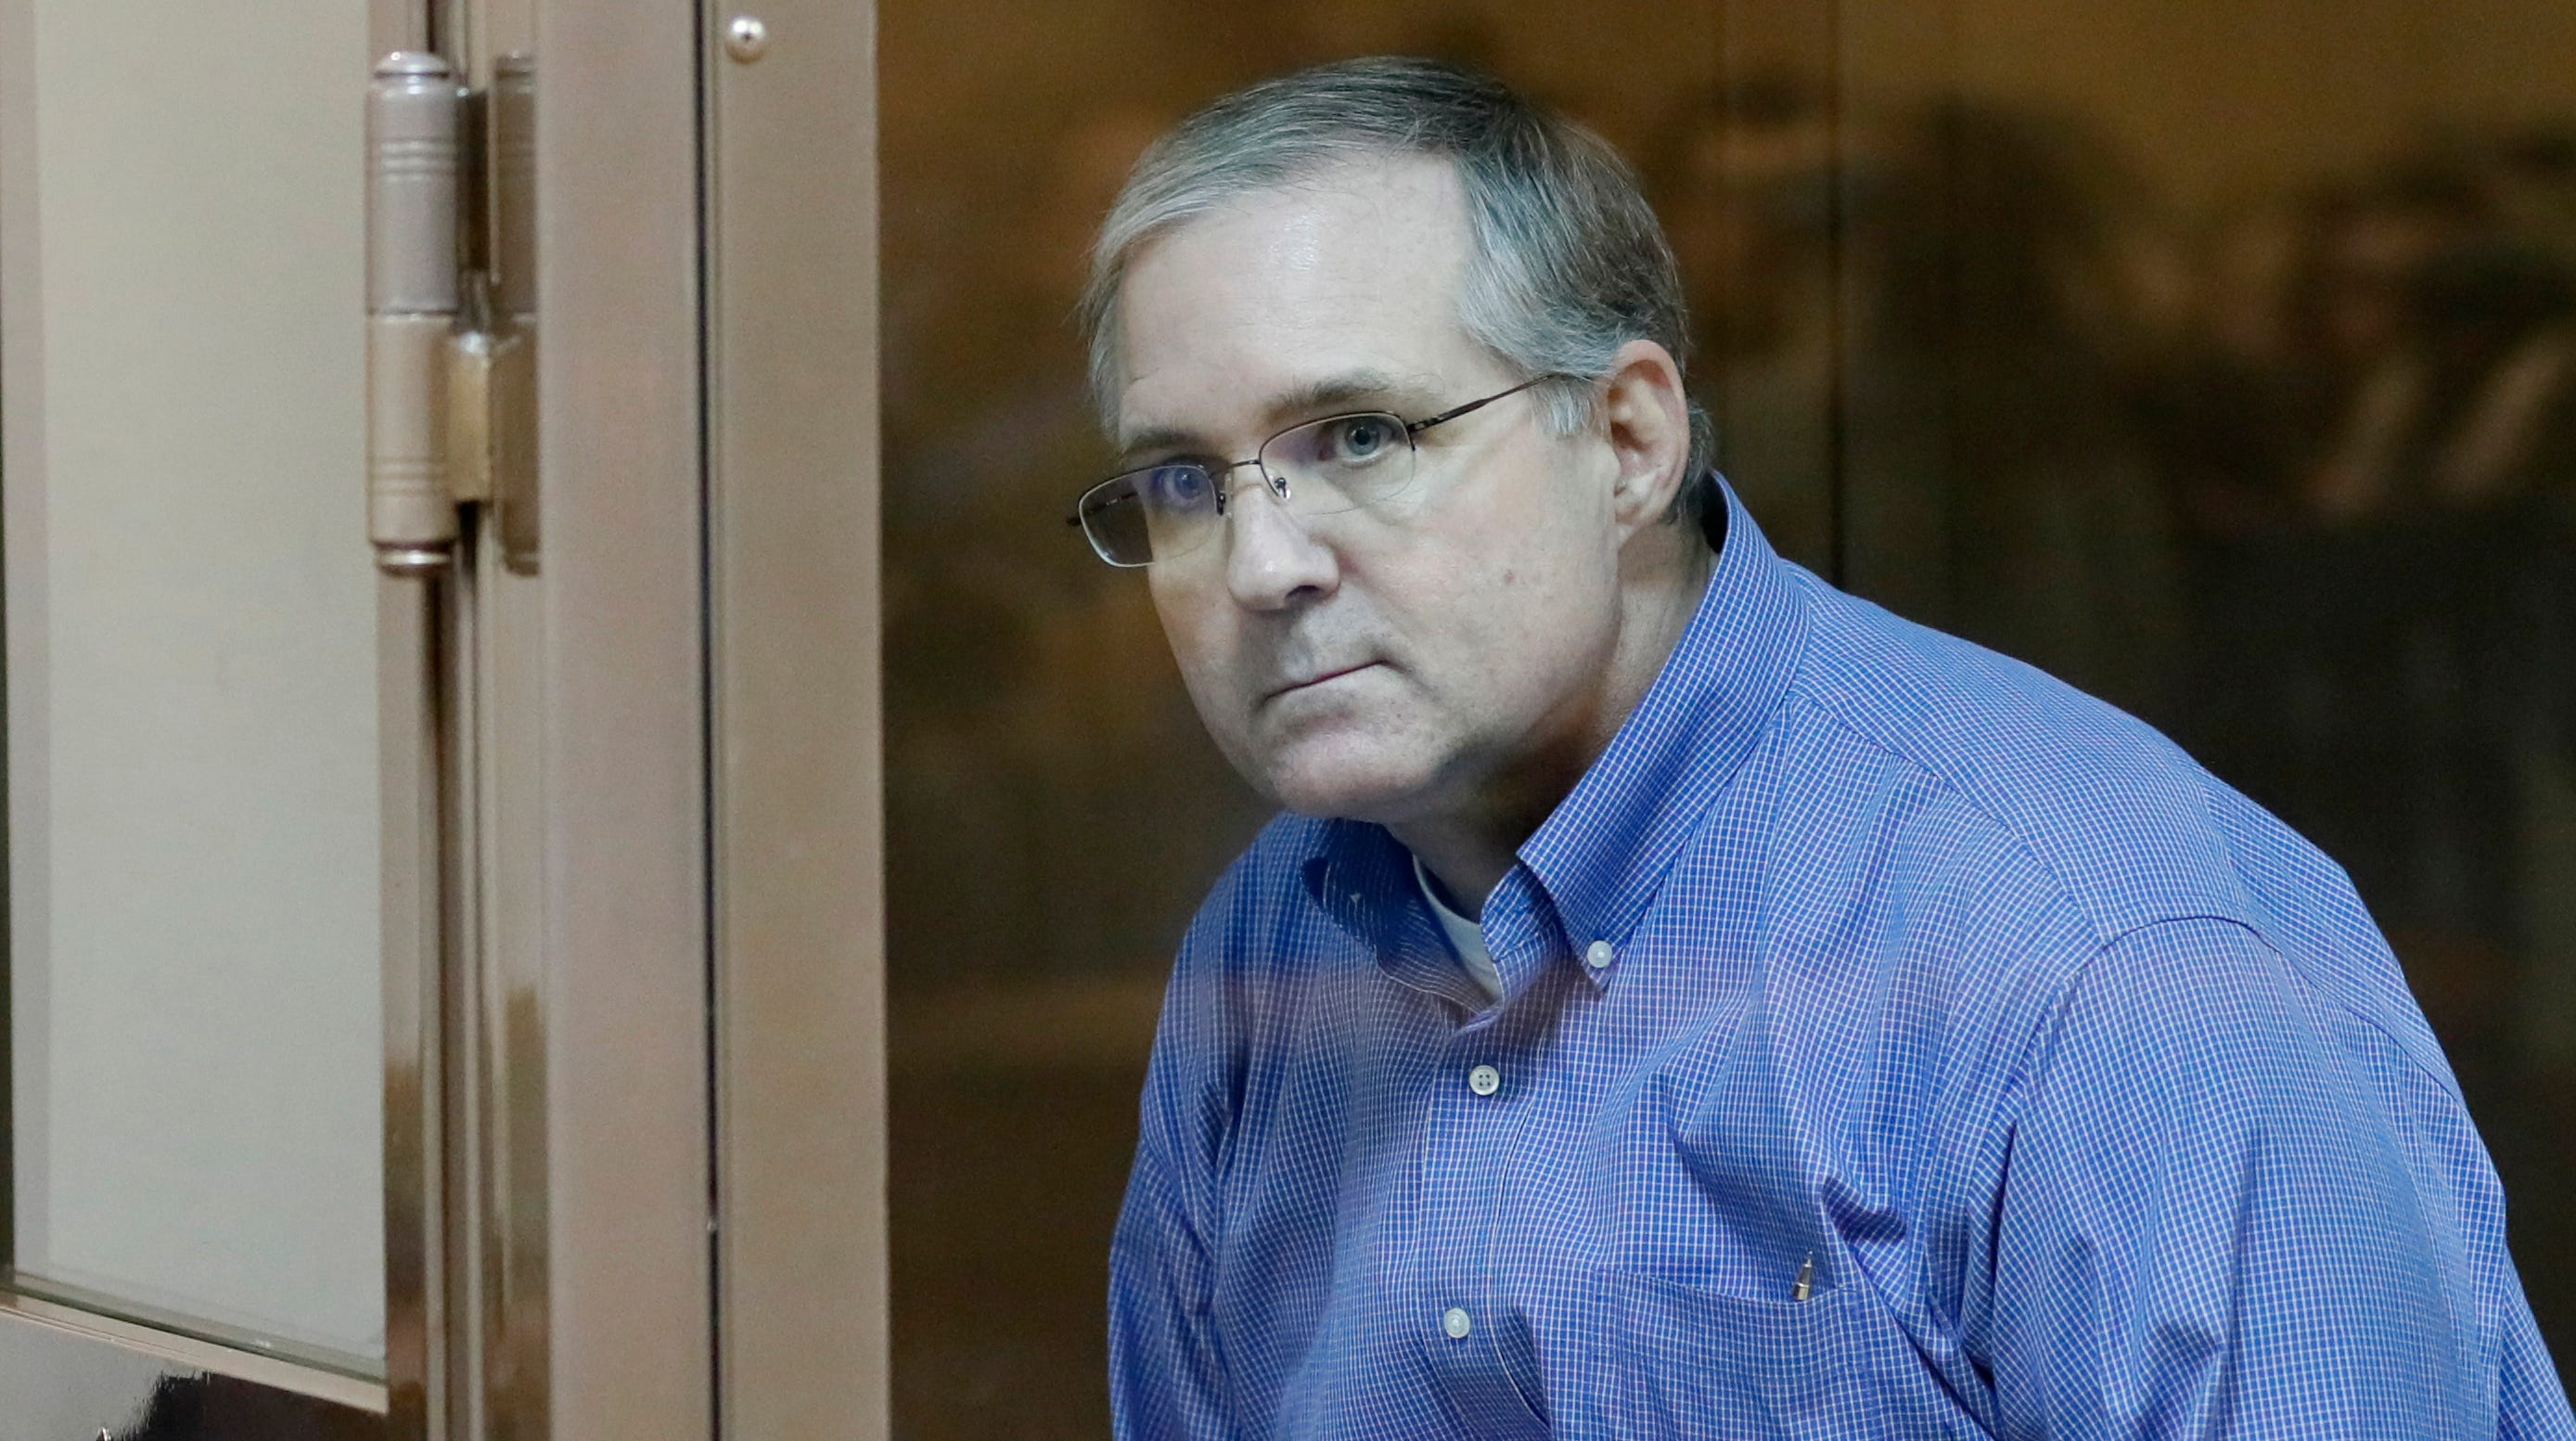 Suspected spy Paul Whelan is seen inside a defendant's glass cage during a hearing of an appeal on his arrest at the Moscow City Court in Moscow, Russia, 22 January 2019. Paul Whelan, a citizen of the United States, Britain, Canada and Ireland, was detained by Russian Federal Security Service (FSB) on suspicion of spying at the end of December 2018 in Moscow. If found guilty he could be sentenced up to 20 years in jail, media reported.